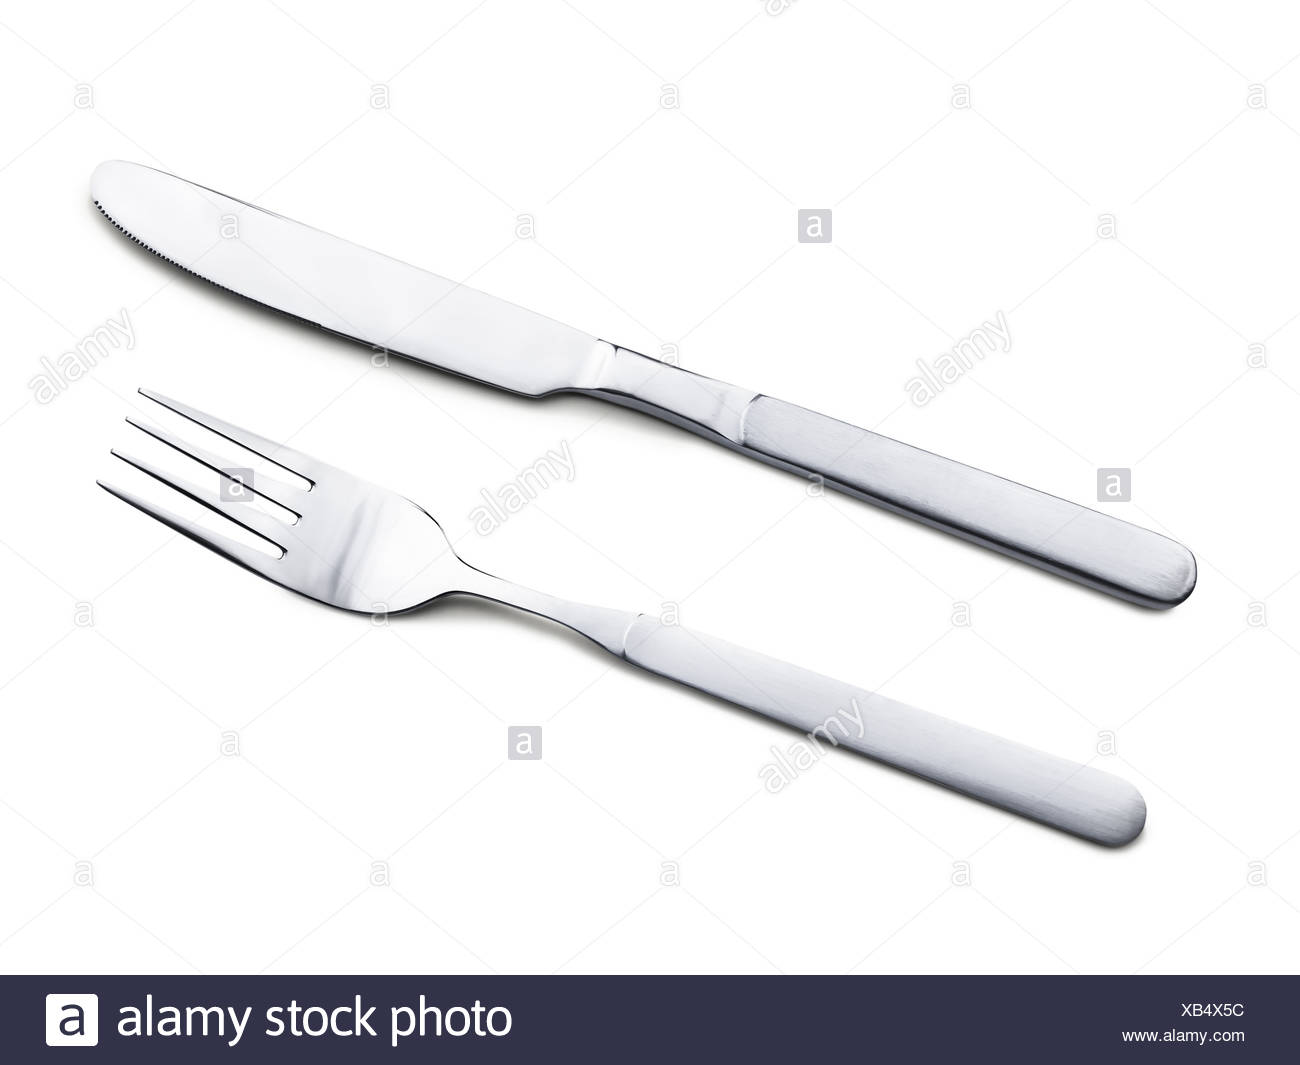 fork and knife - Stock Image